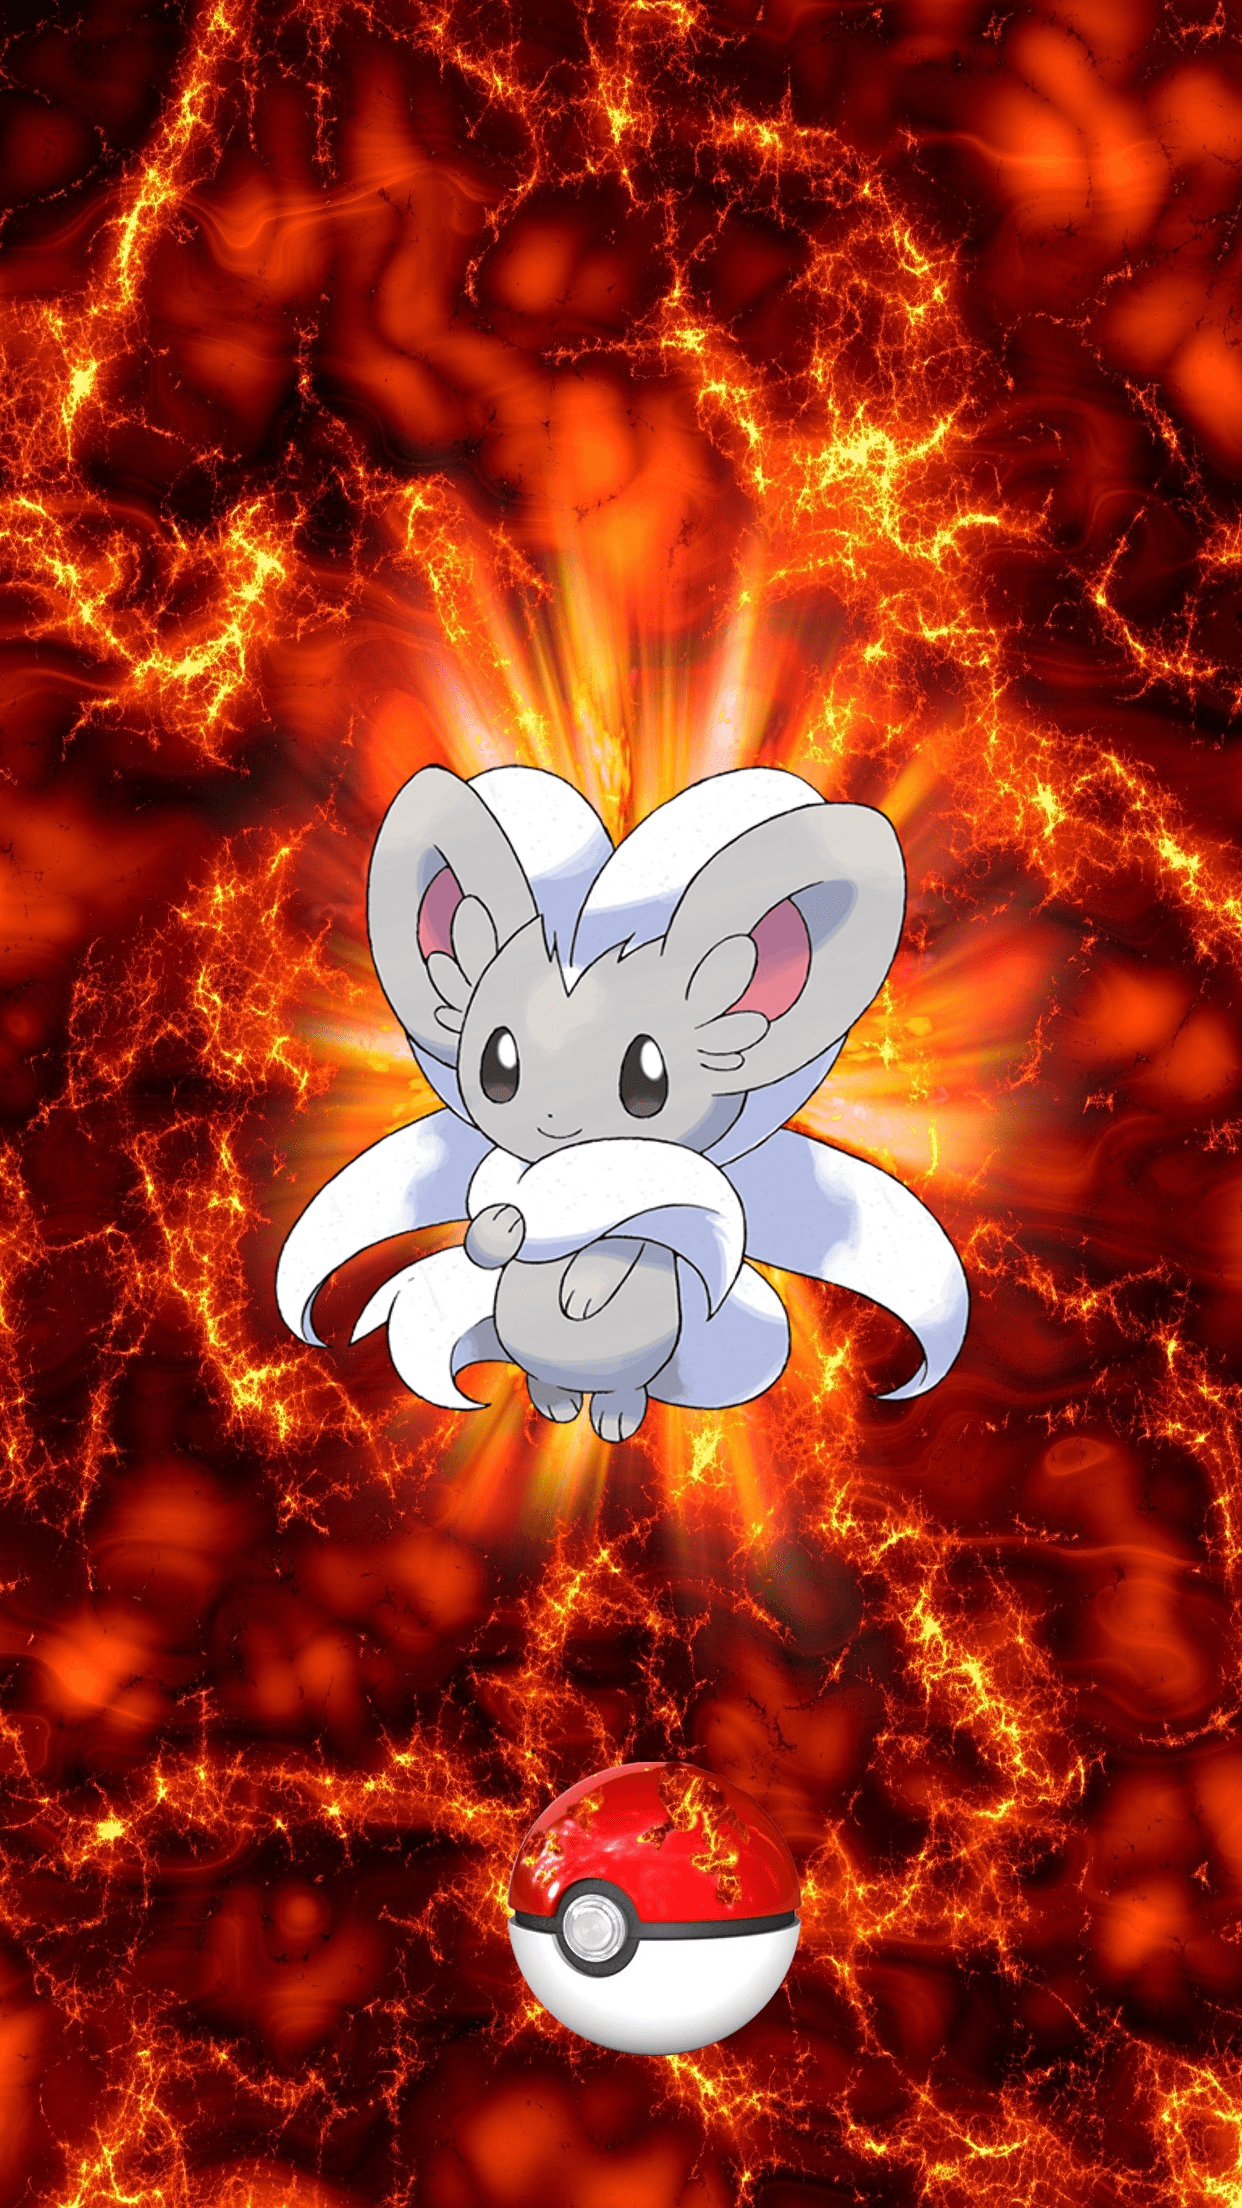 573 Fire Pokeball Cinccino Chillaccino 17 Minccino | Wallpaper